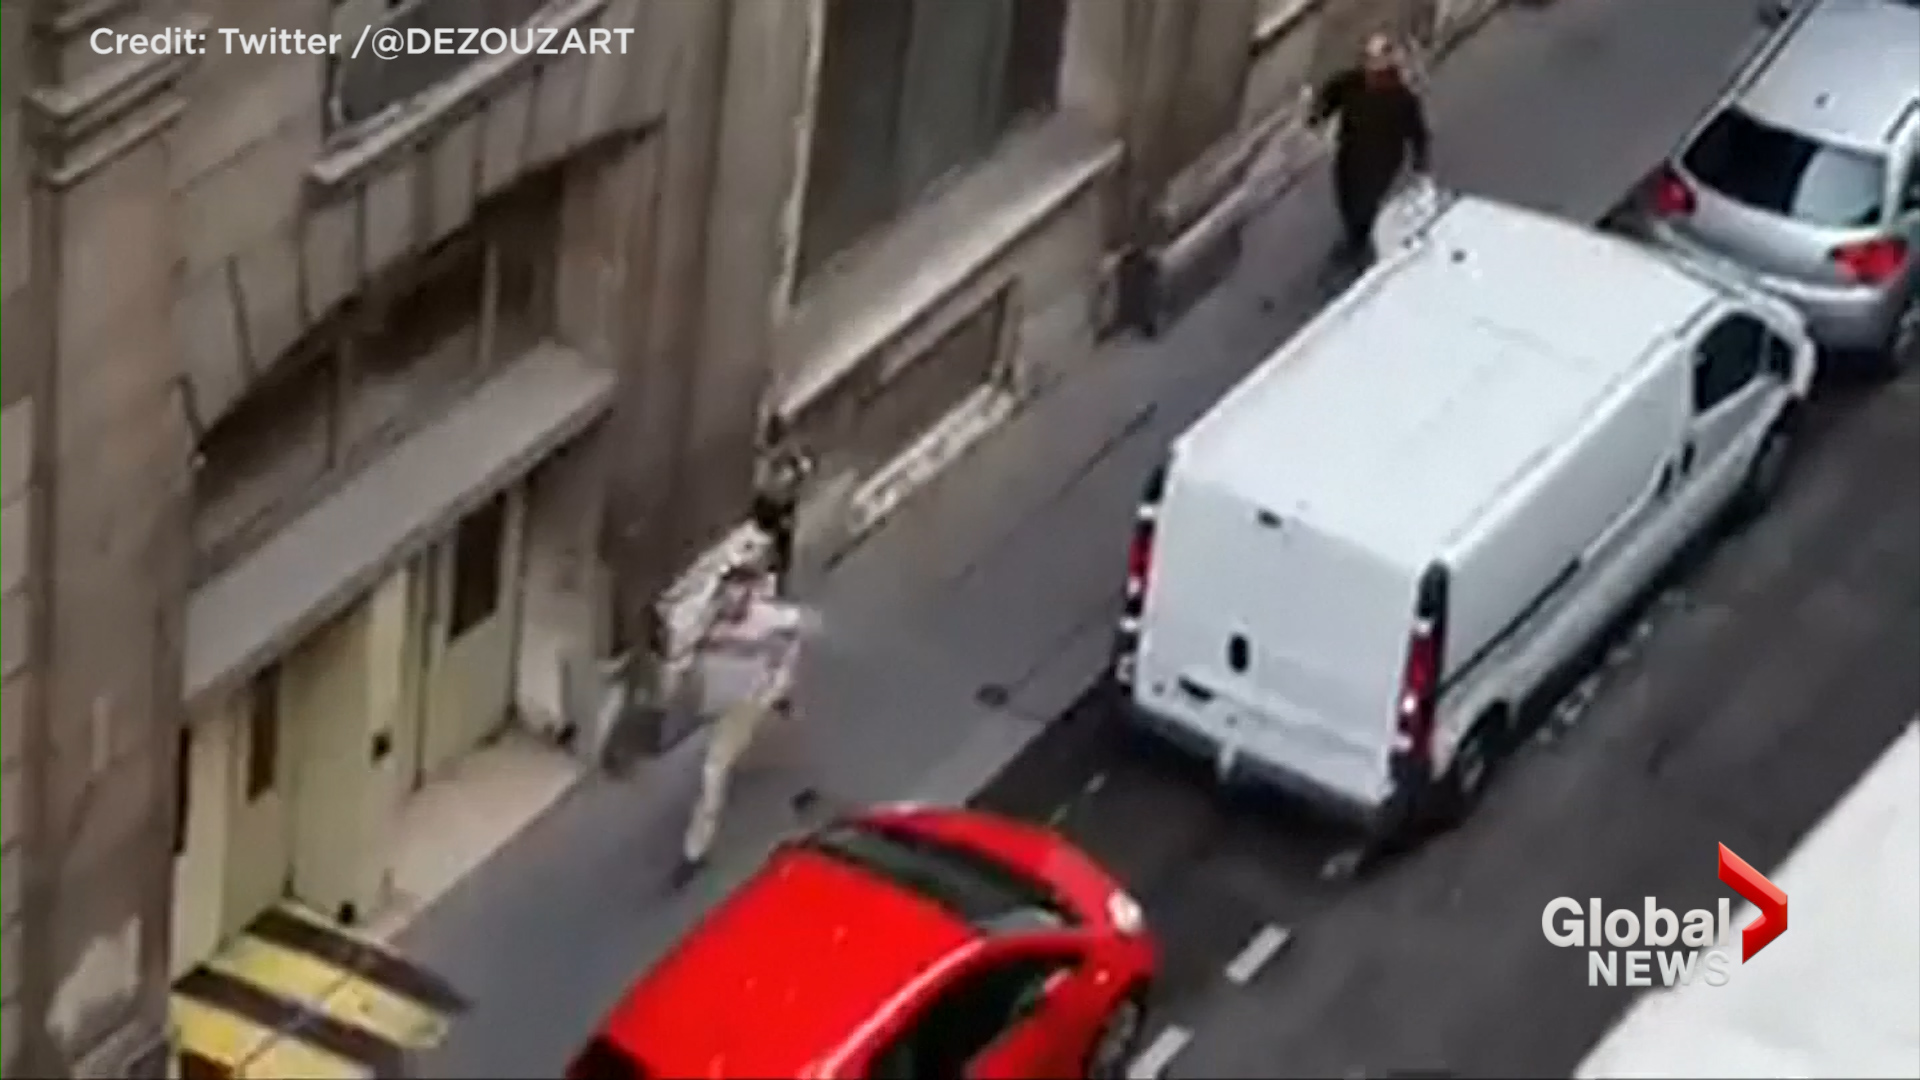 Man shot by police following Paris knife attack